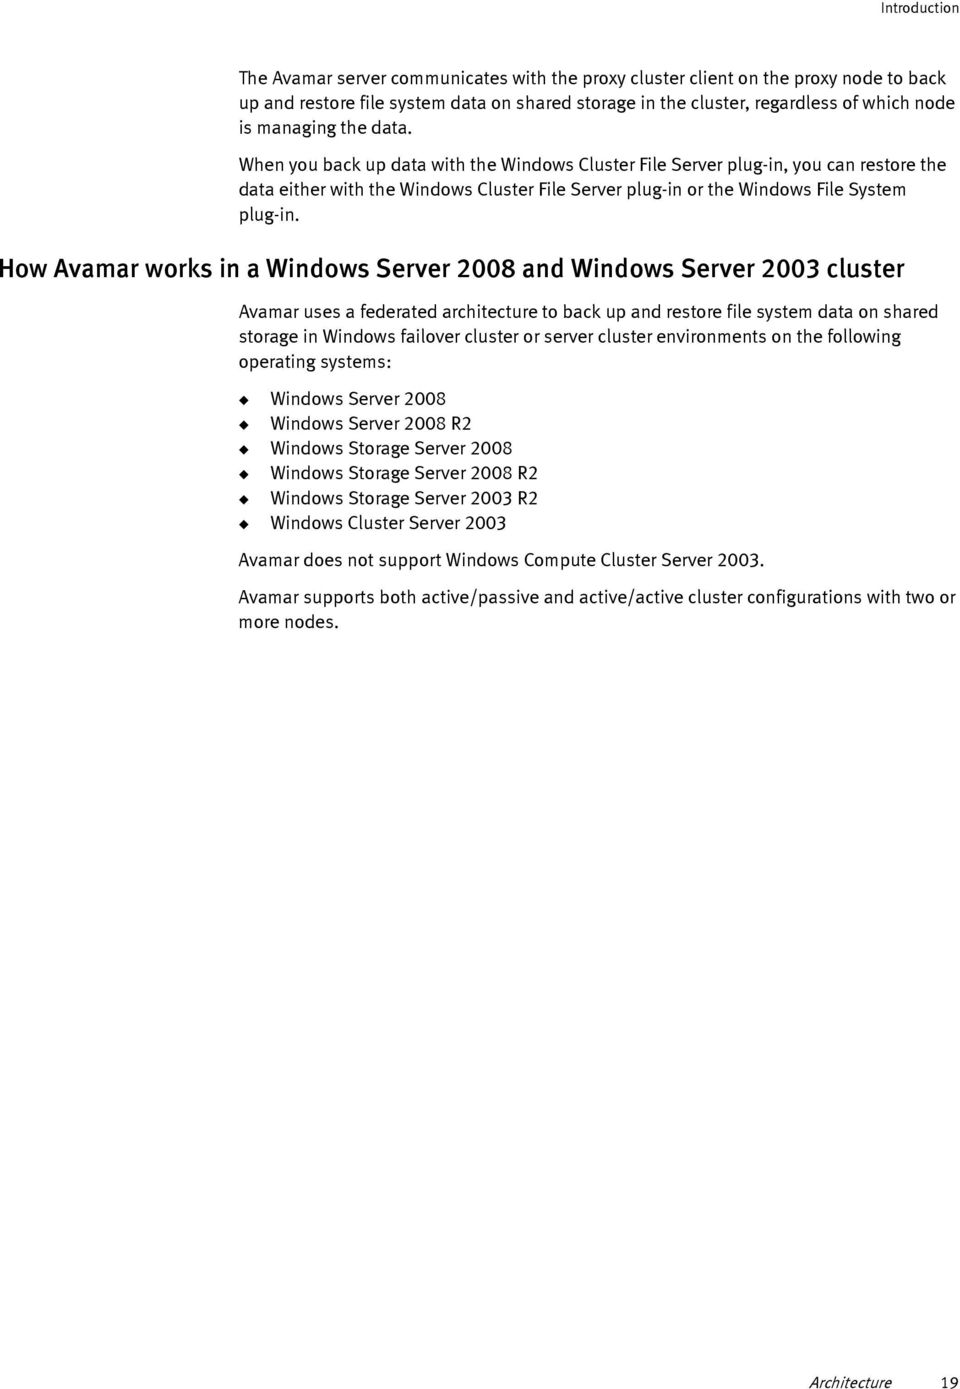 How Avamar works in a Windows Server 2008 and Windows Server 2003 cluster Avamar uses a federated architecture to back up and restore file system data on shared storage in Windows failover cluster or